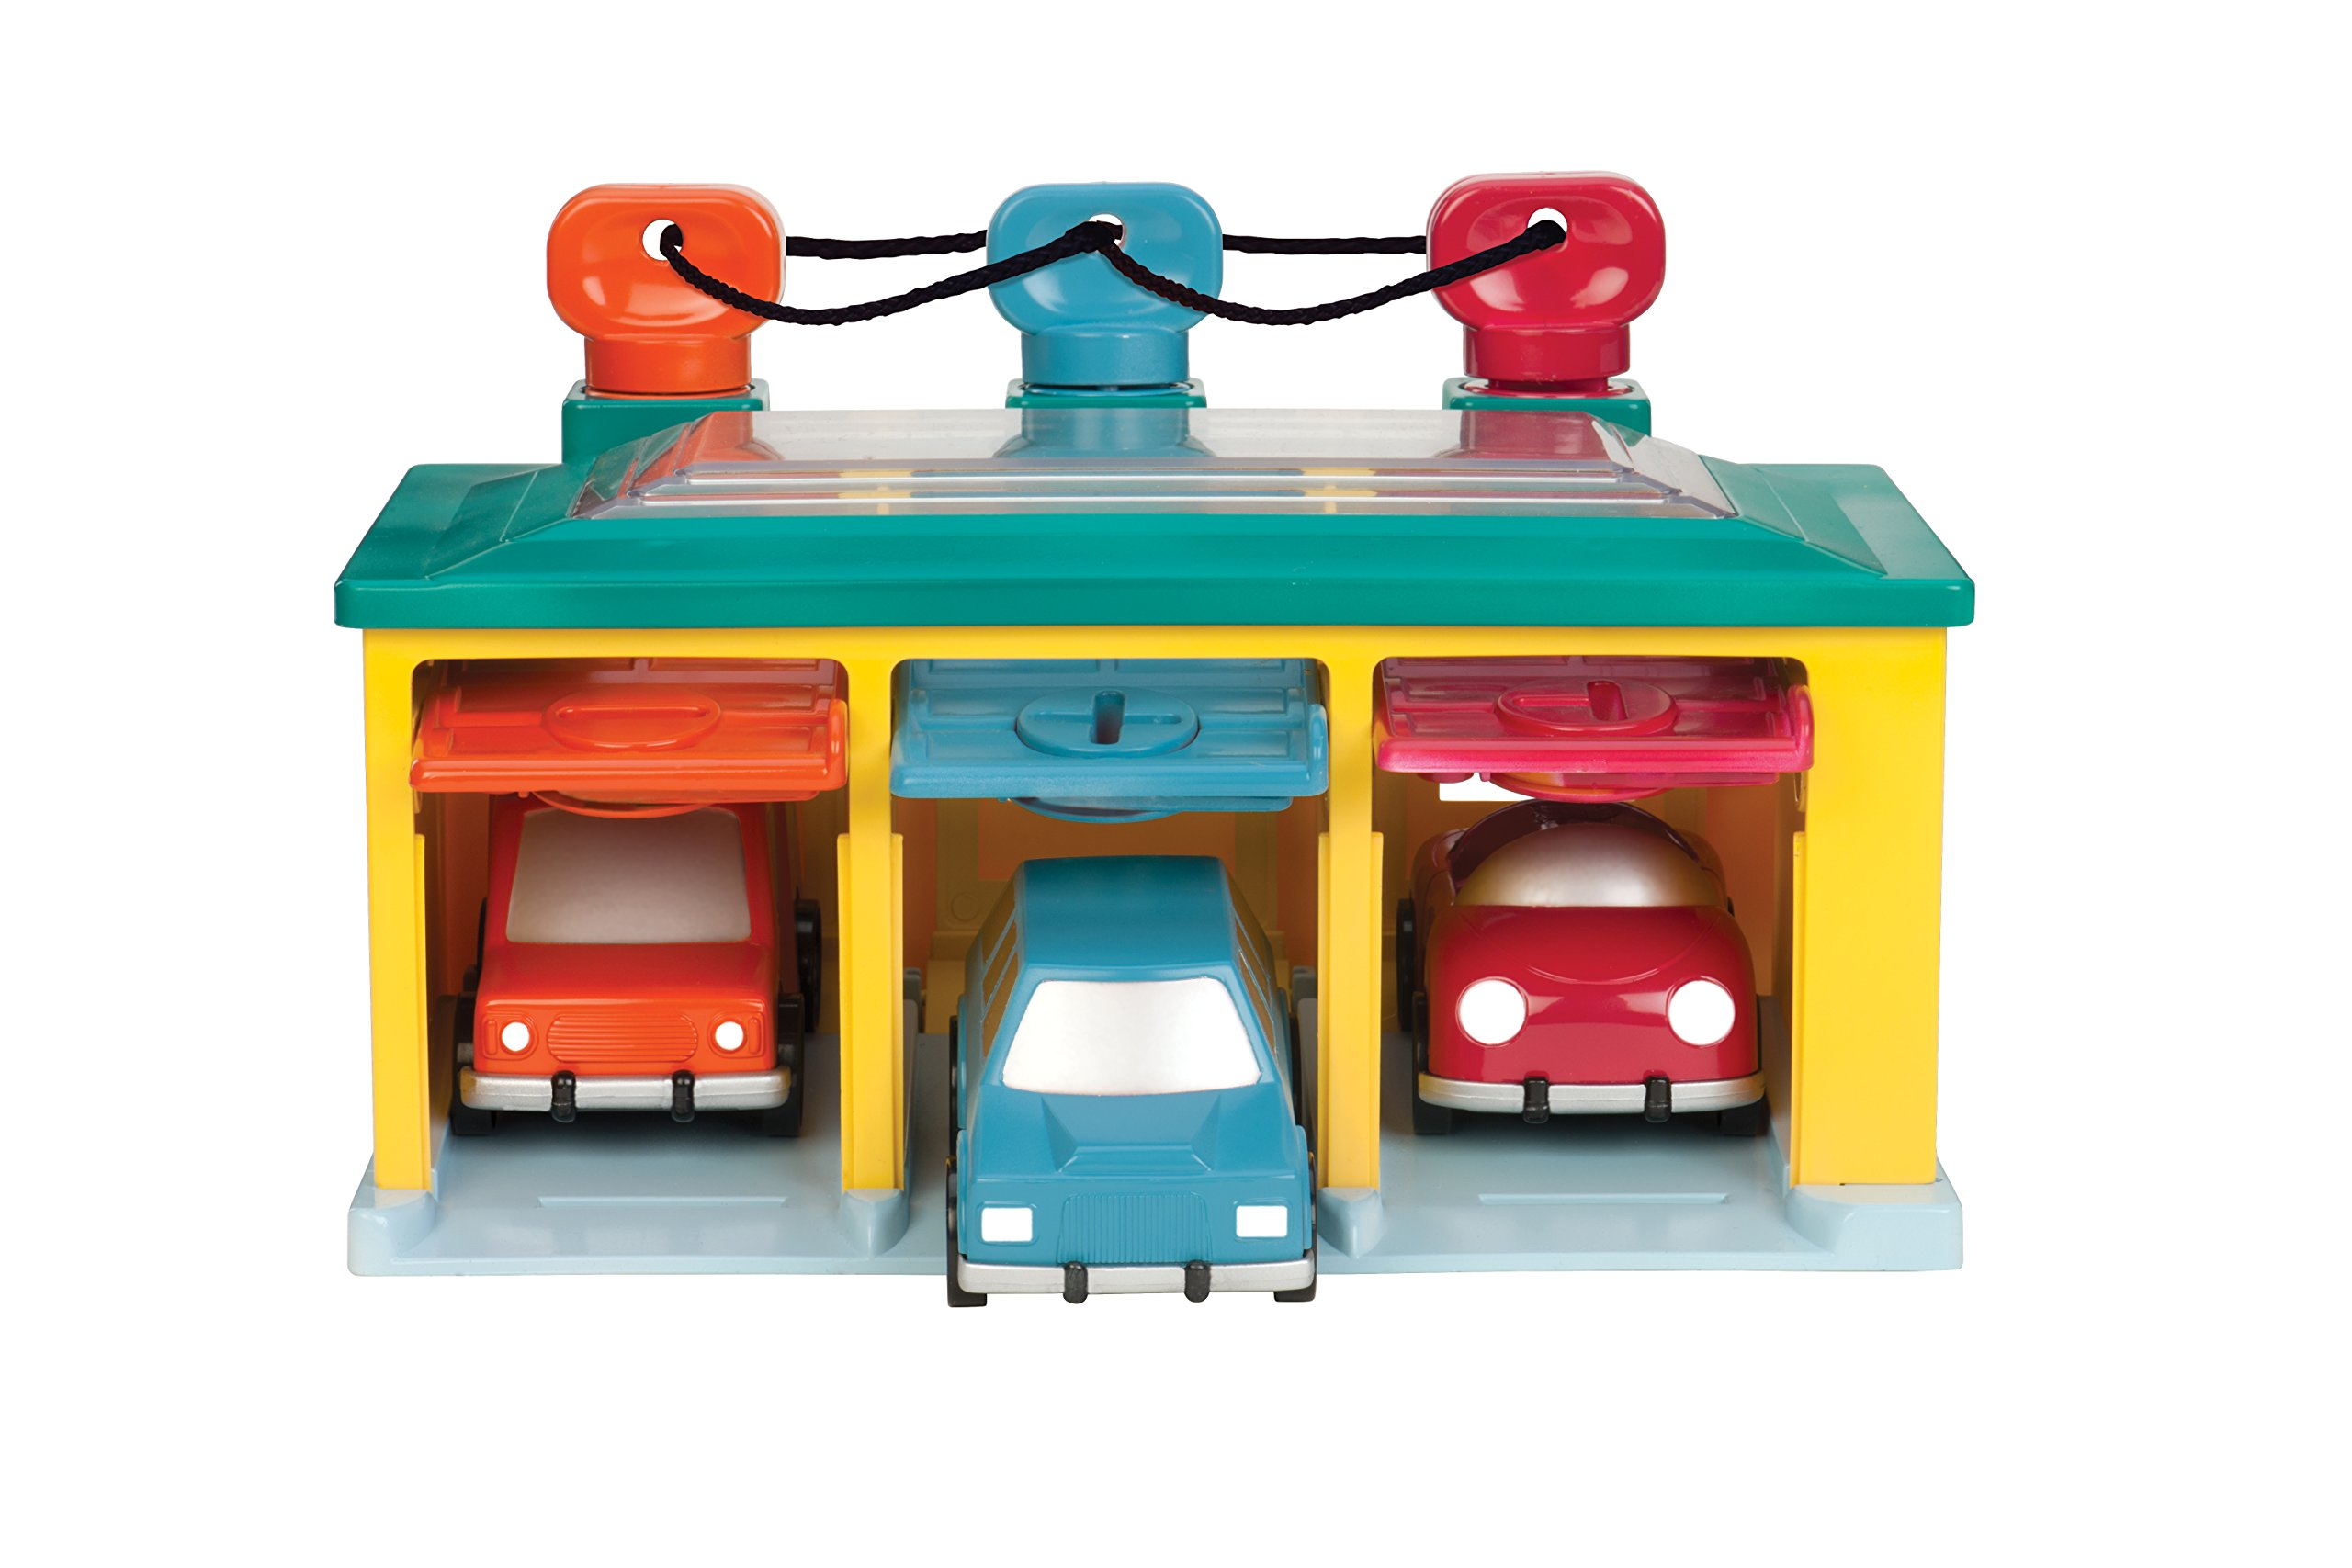 Garage with Keys and 3 Toy Cars